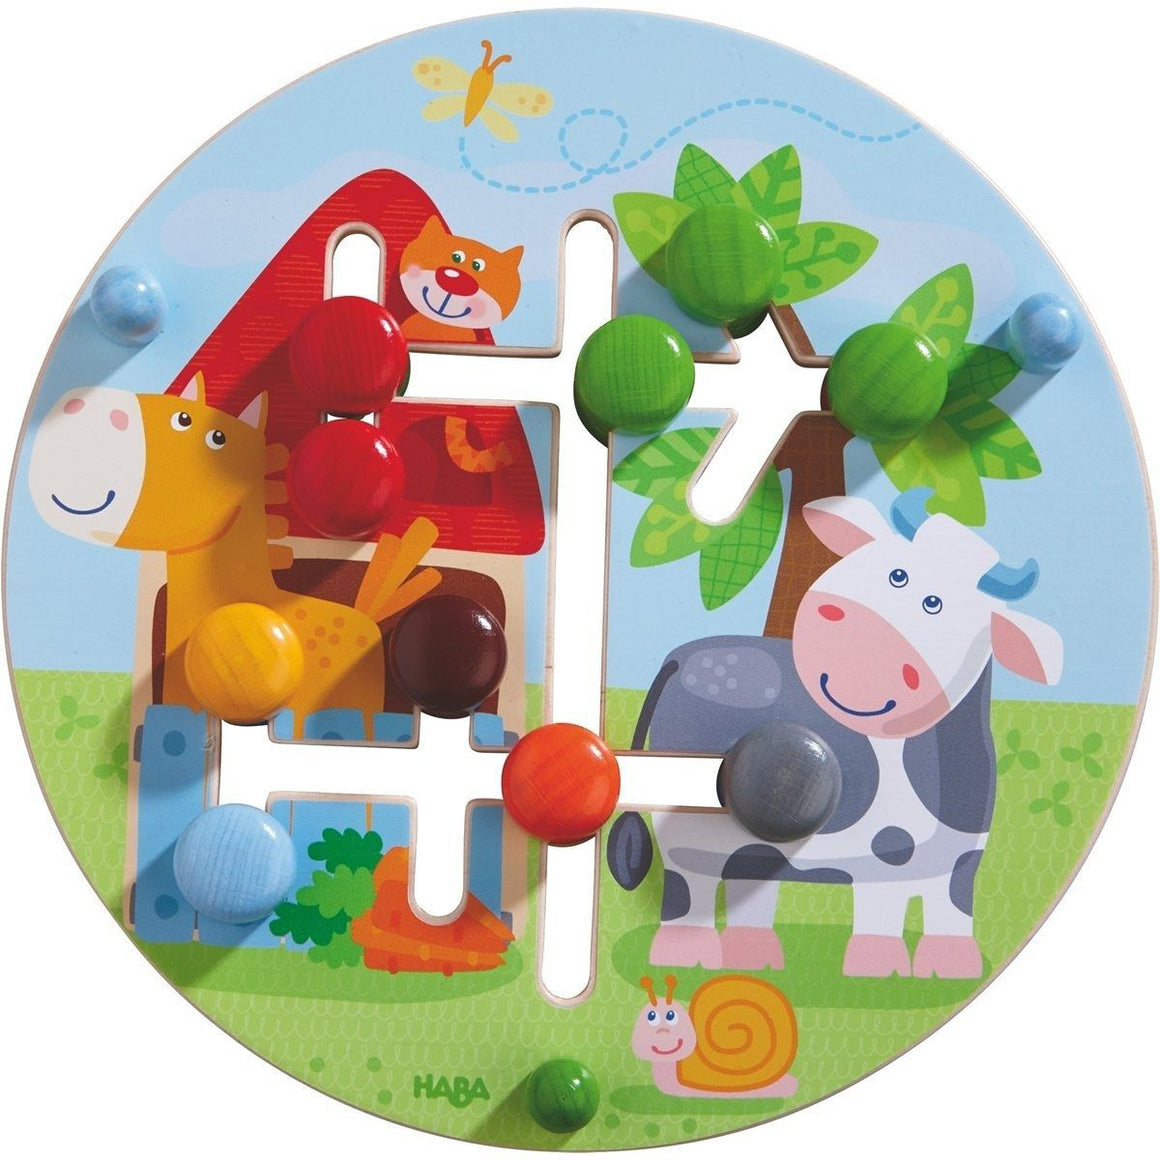 Haba Motor Skills Board - On the Farm